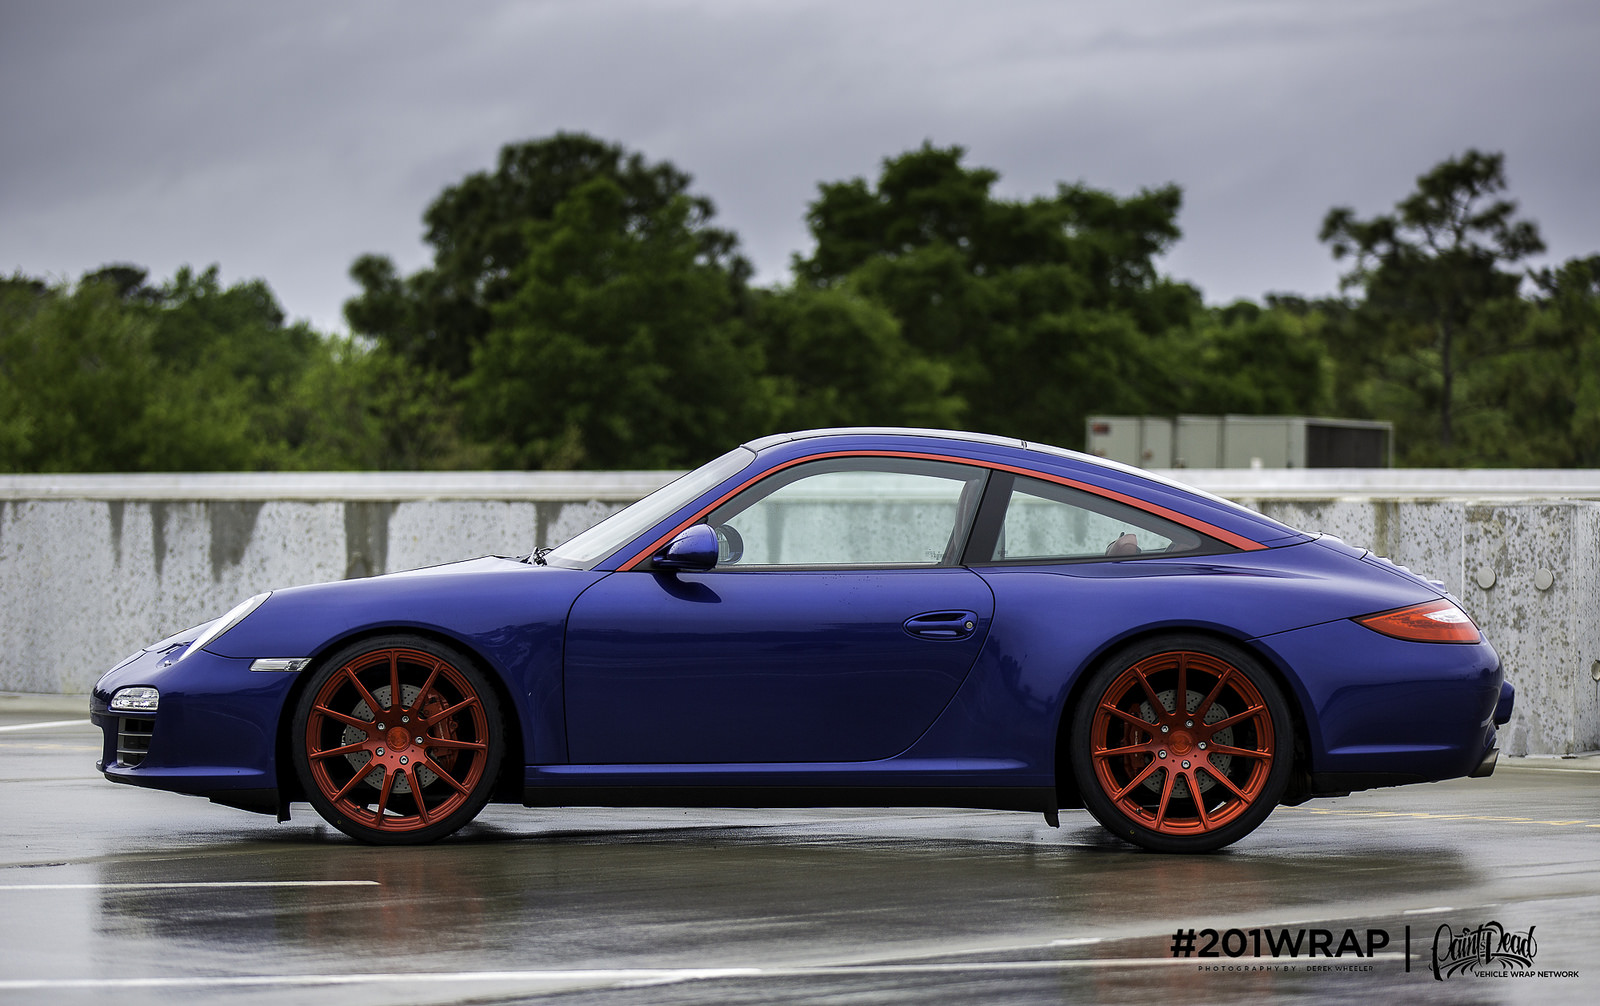 Porsche 997 Targa 4s On Velos S2 Forged Wheels In Lollipop Red Velos Designwerks Performance